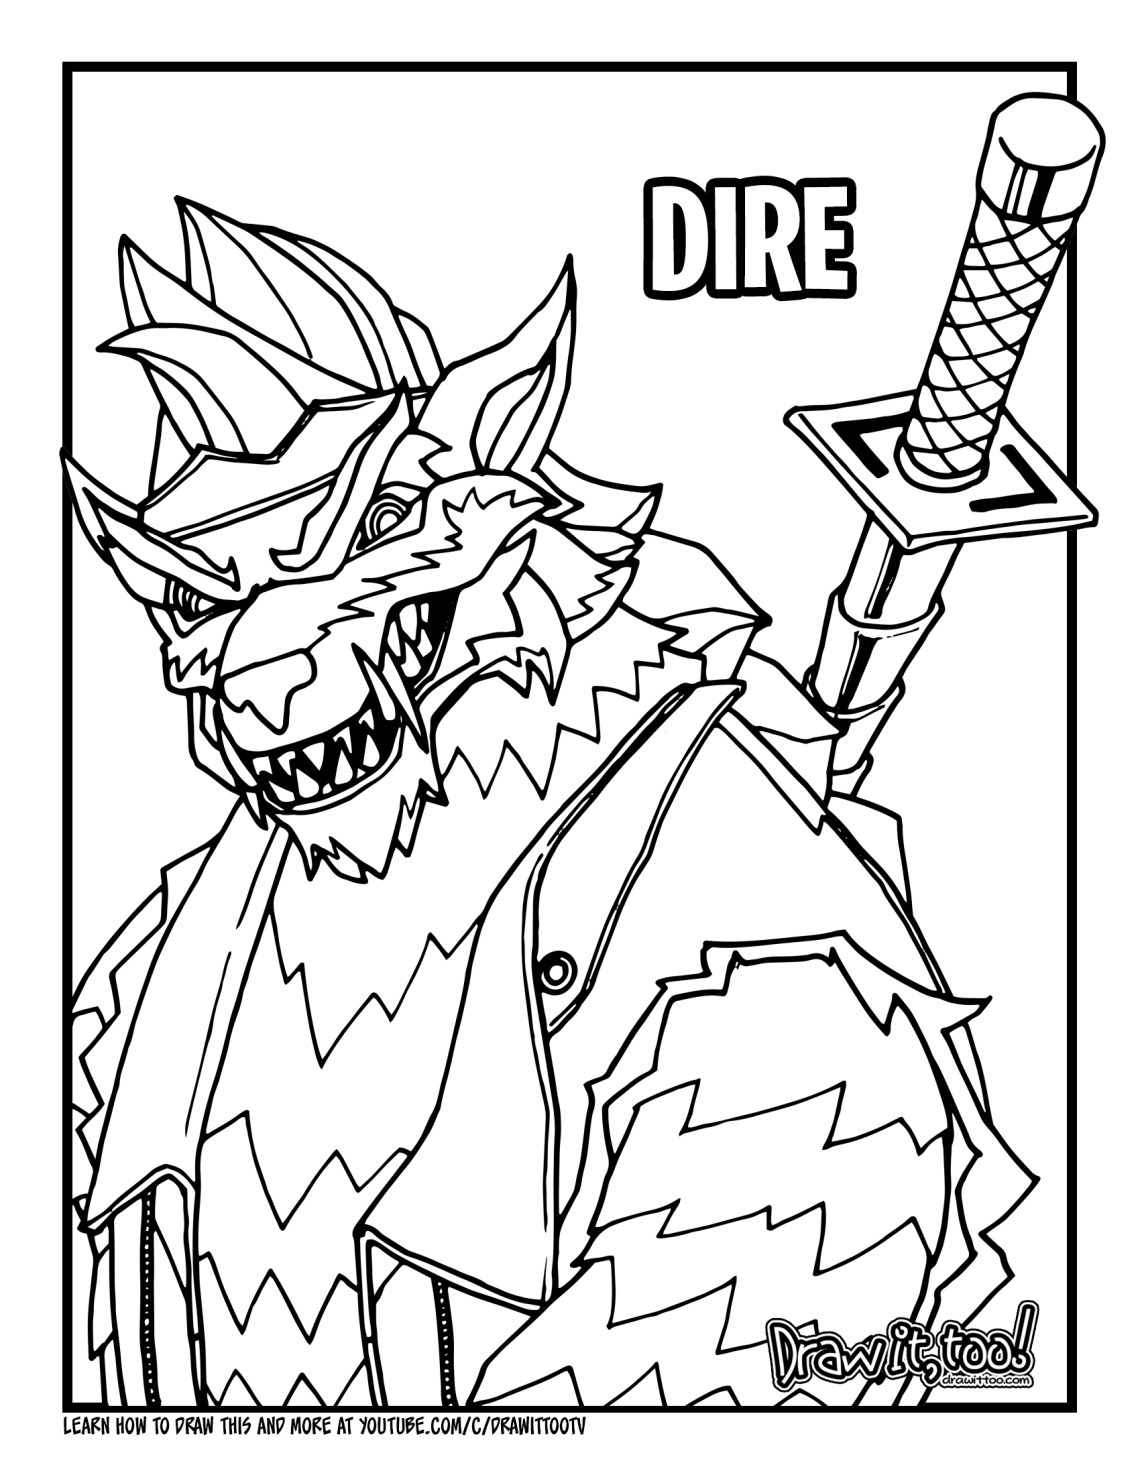 season 6 fortnite coloring pages how to draw dire max level fortnite drawing tutorial fortnite pages season coloring 6